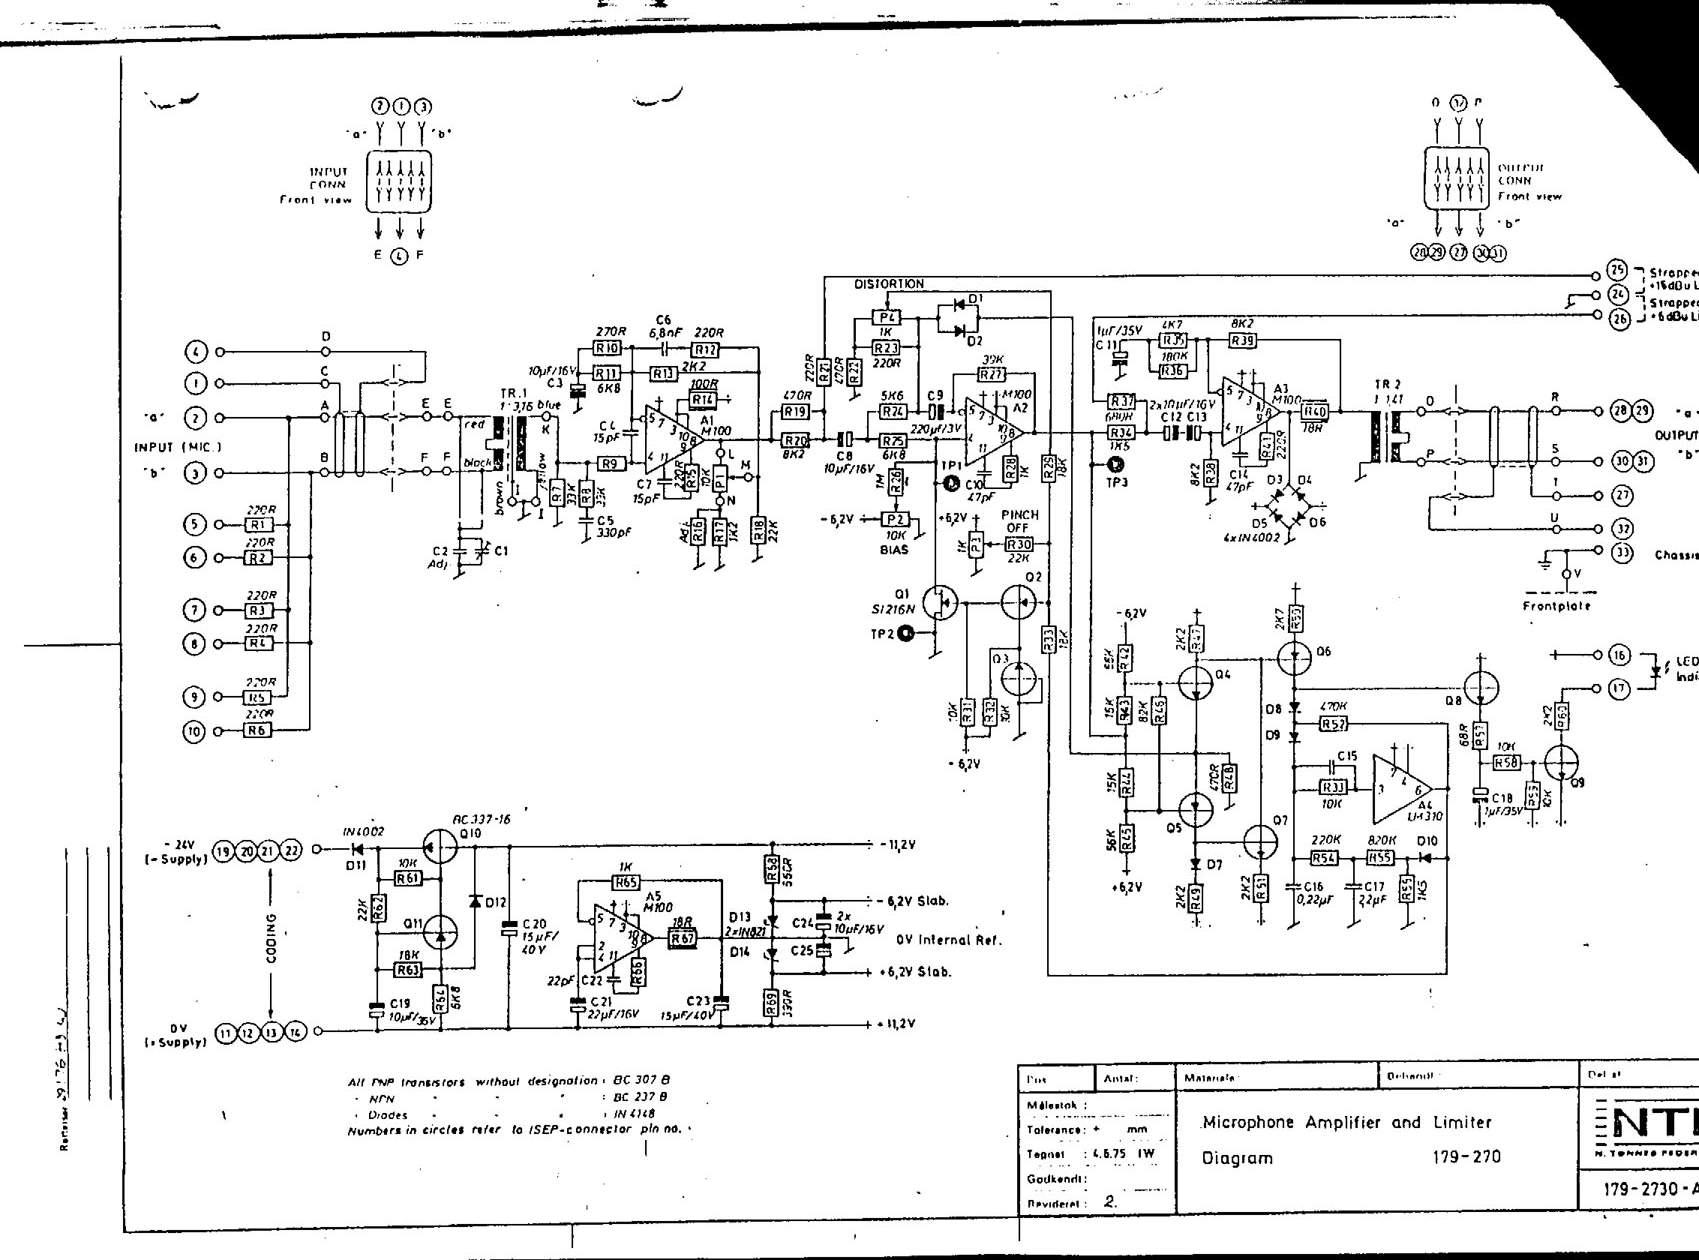 Wiring Diagram Behringer Ecm8000 Page 5 And Preamp Eq Two Mixing Boards Though One Cakewalk Forums Source Clic Schematics Rh Gyraf Dk Eurodesk Mini Amp 800